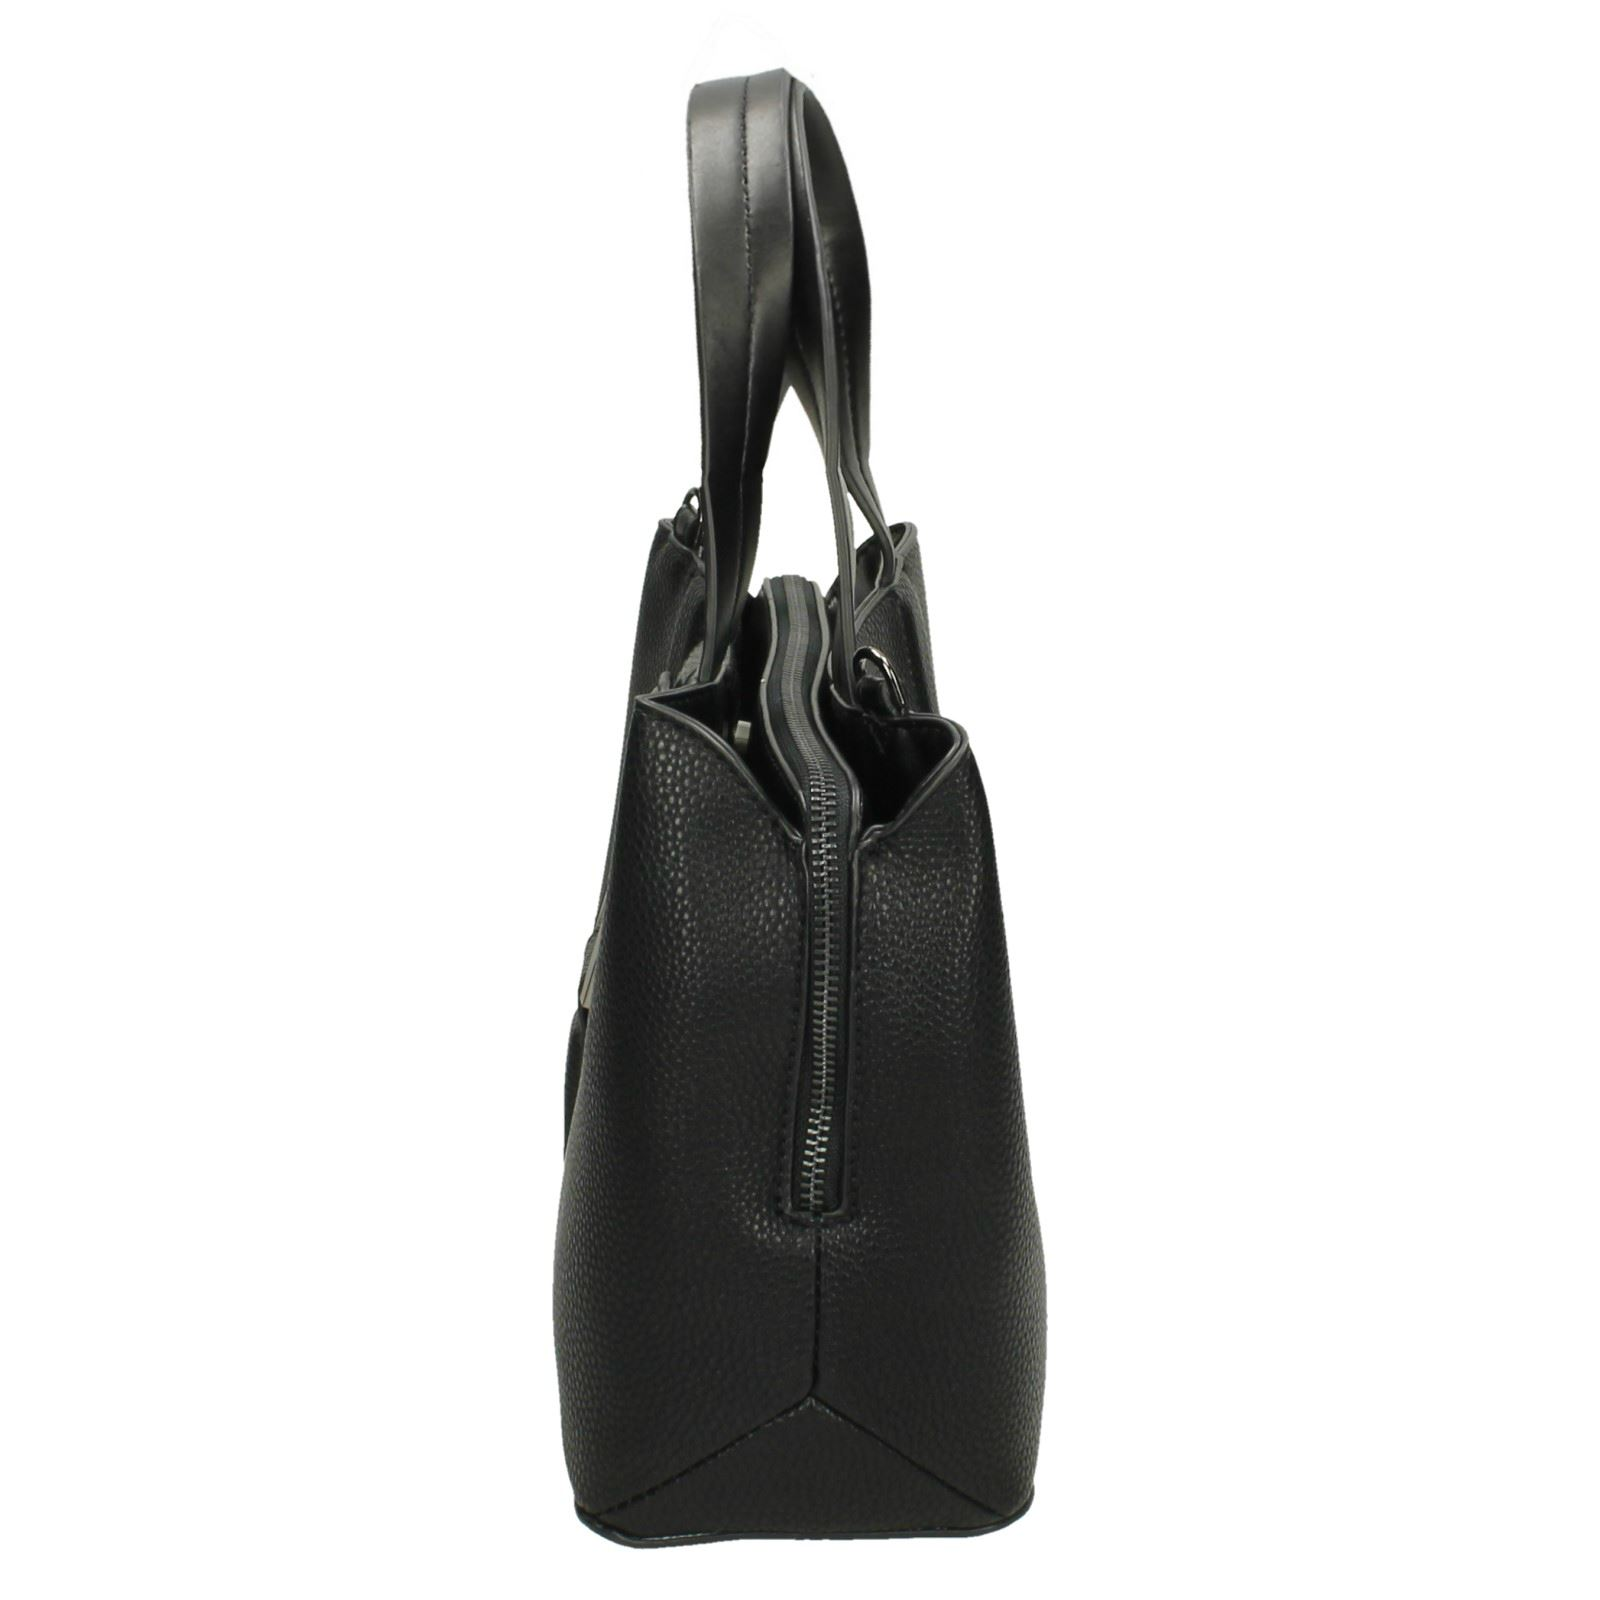 a89a6c2fe Ladies Clarks Synthetic Tote Bags Magnetize Me Black One Size. About this  product. Picture 1 of 11  Picture 2 of 11  Picture 3 of 11 ...